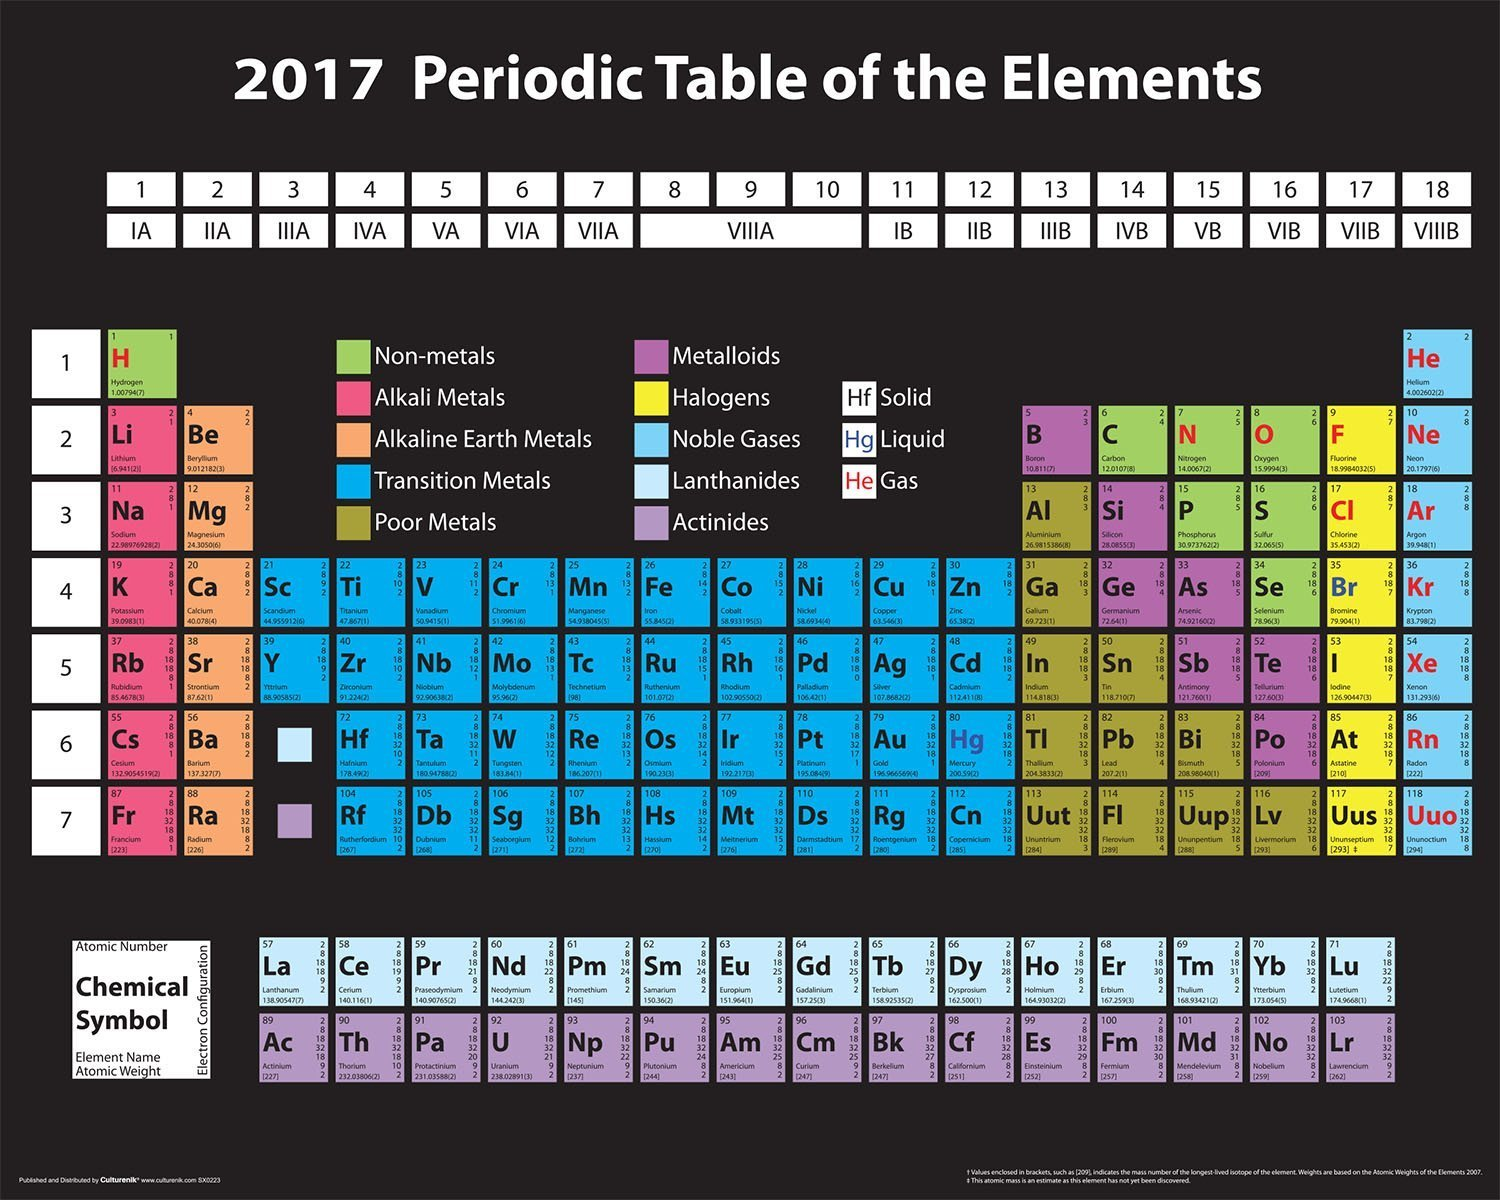 Amazon periodic table of elements 2017 decorative educational amazon periodic table of elements 2017 decorative educational science classroom print unframed 16x20 poster posters prints urtaz